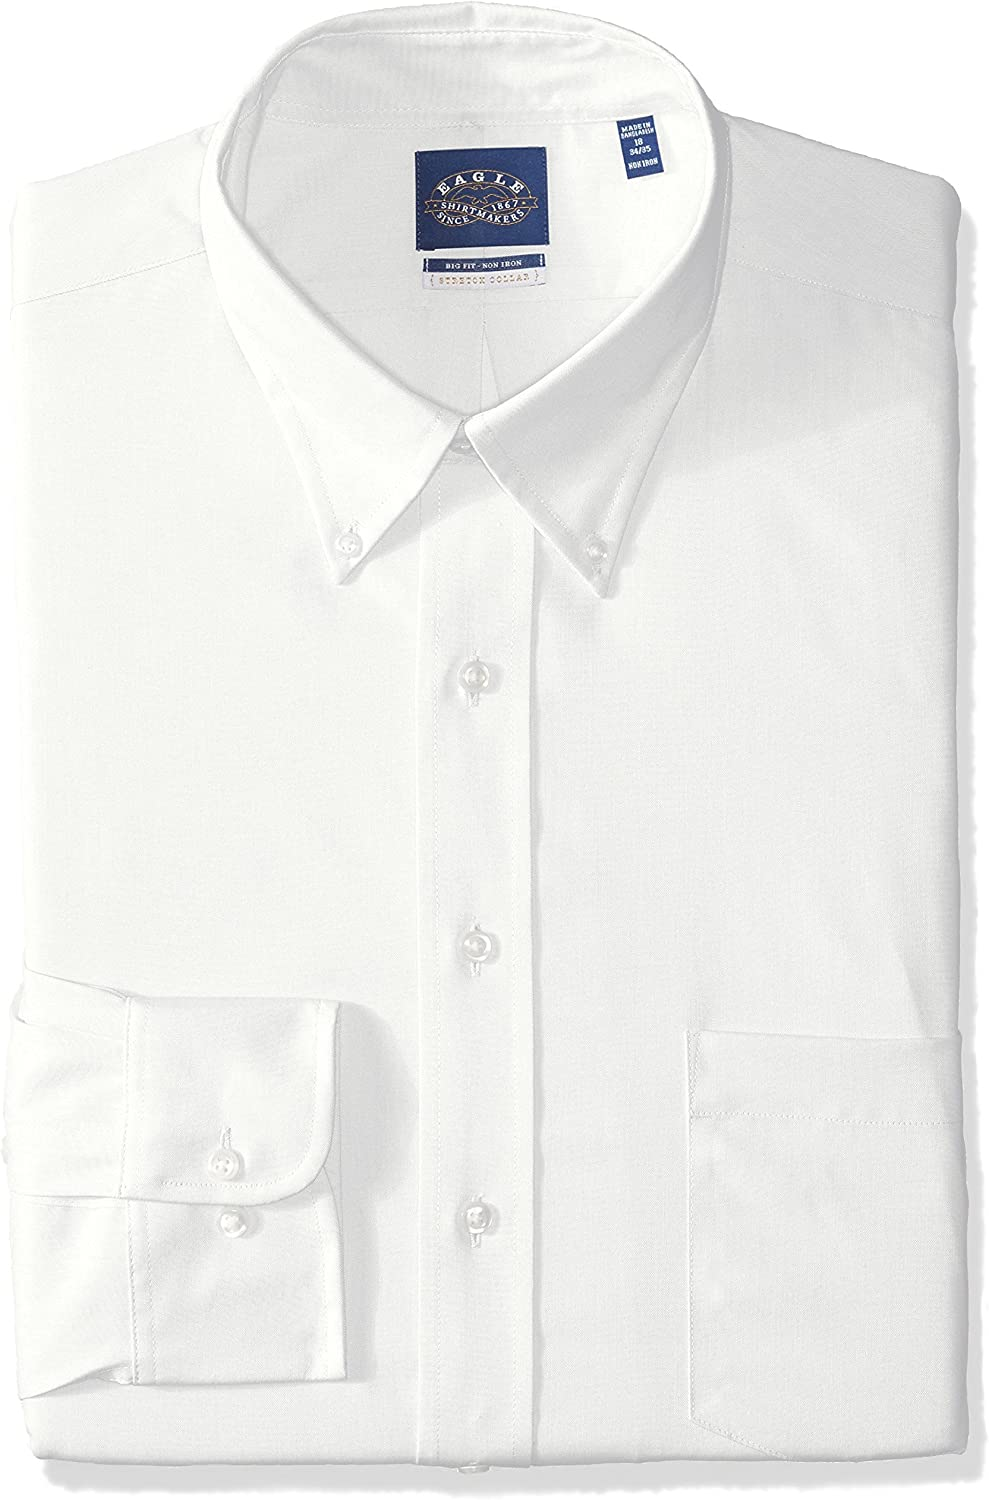 Eagle BIG FIT Dress Shirts Non Iron Stretch Button Down Collar Solid (Big and Tall)